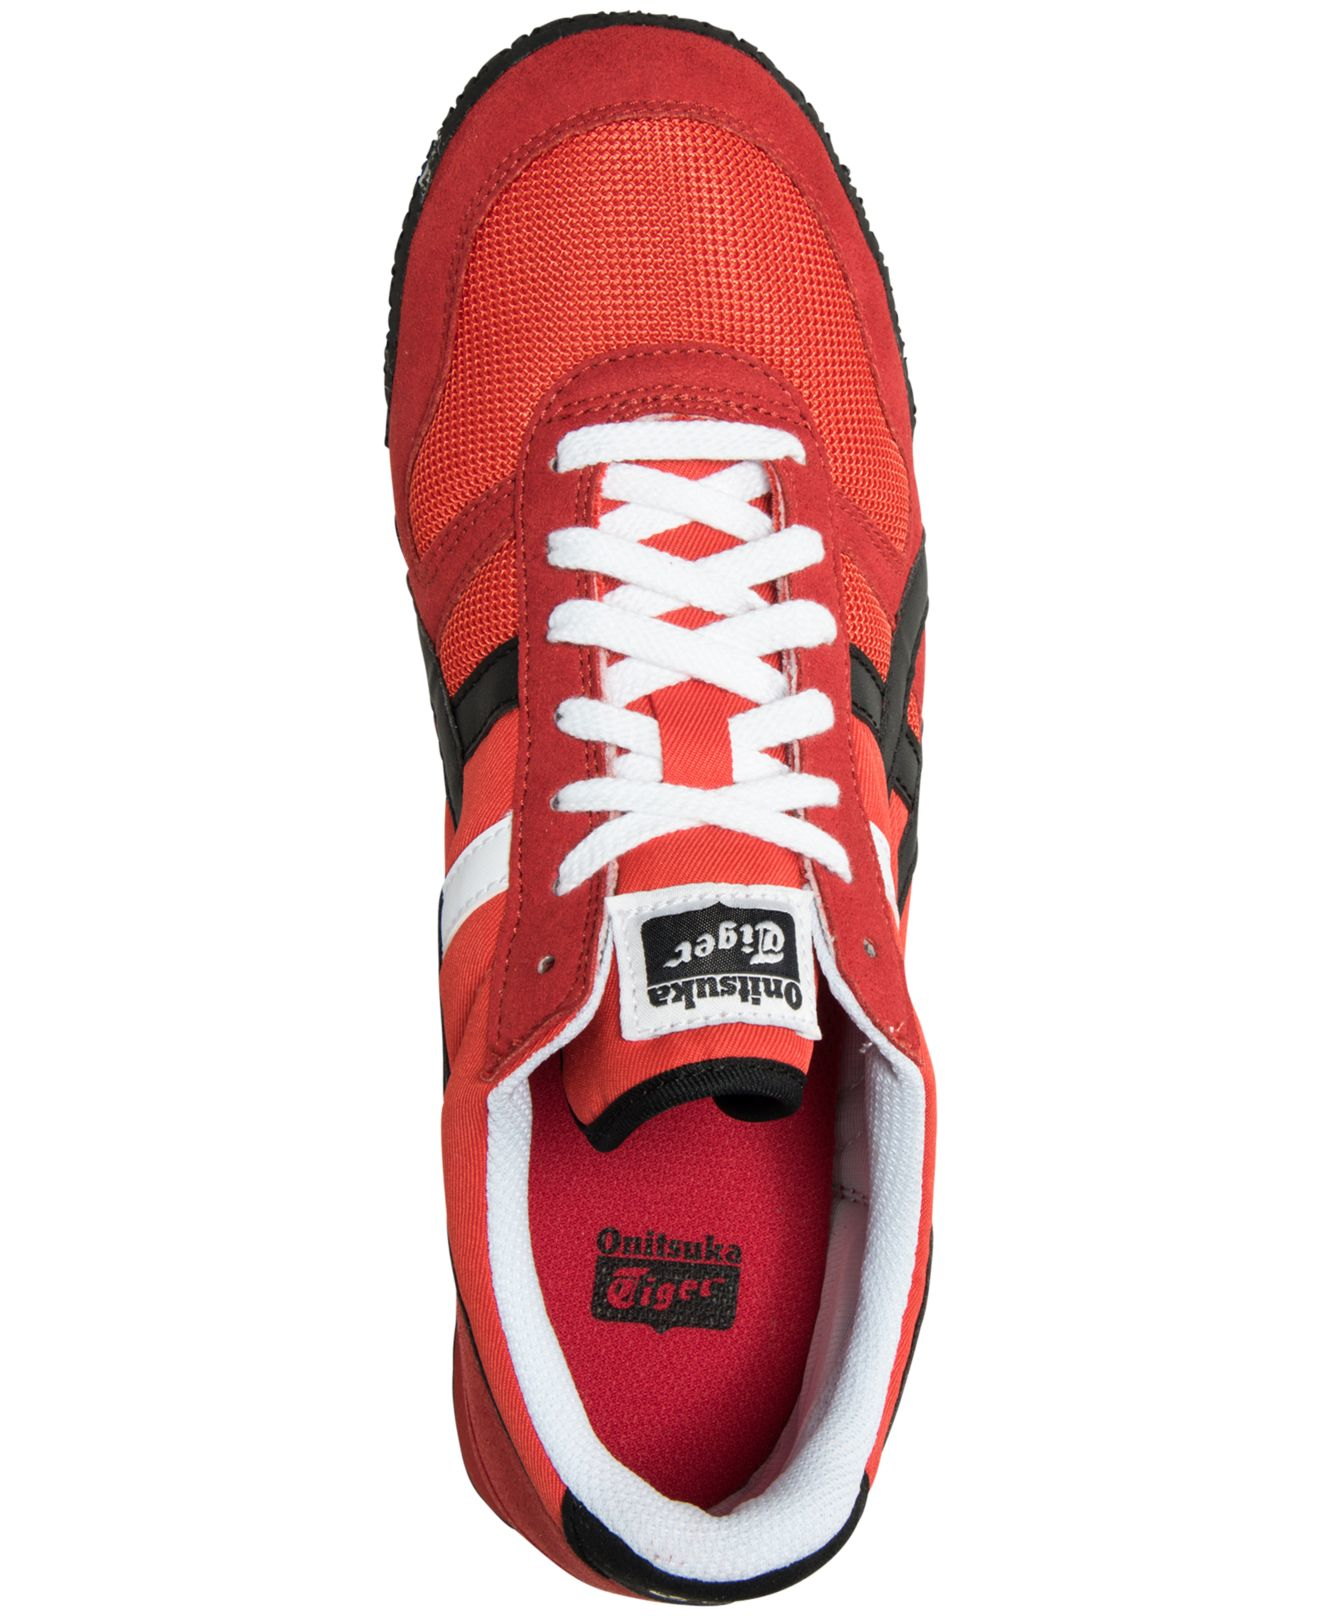 Lits Ultimate Asics Hommes Onitsuka Tiger Ultimate 81 Sneakers Sneakers 81 Casual De bef4d5a - viagraonlinecanadianpharmacy.site